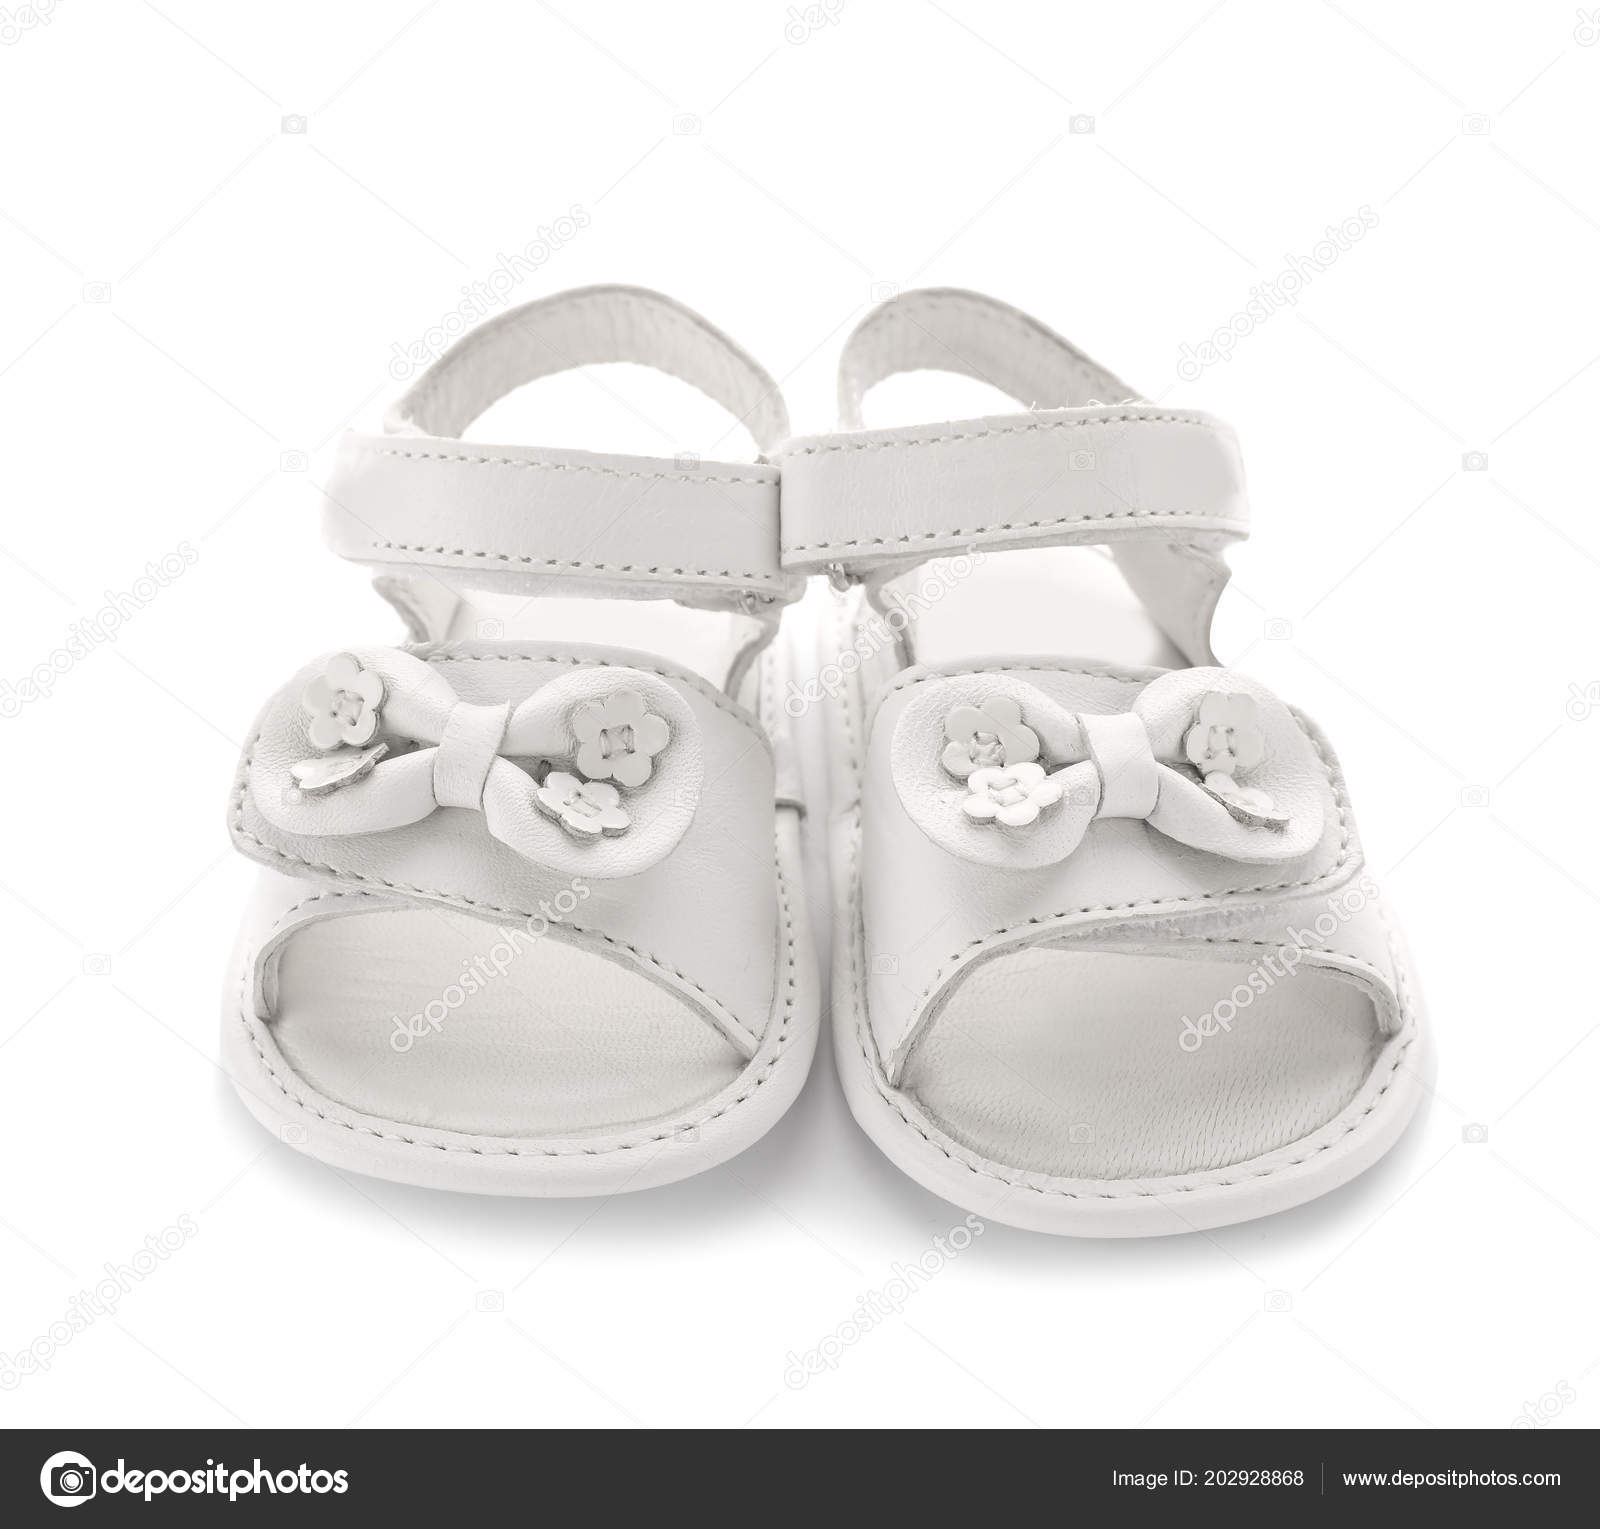 b917504dce32f0 Pair Cute Baby Sandals Decorated Bows White Background — Stock Photo ...